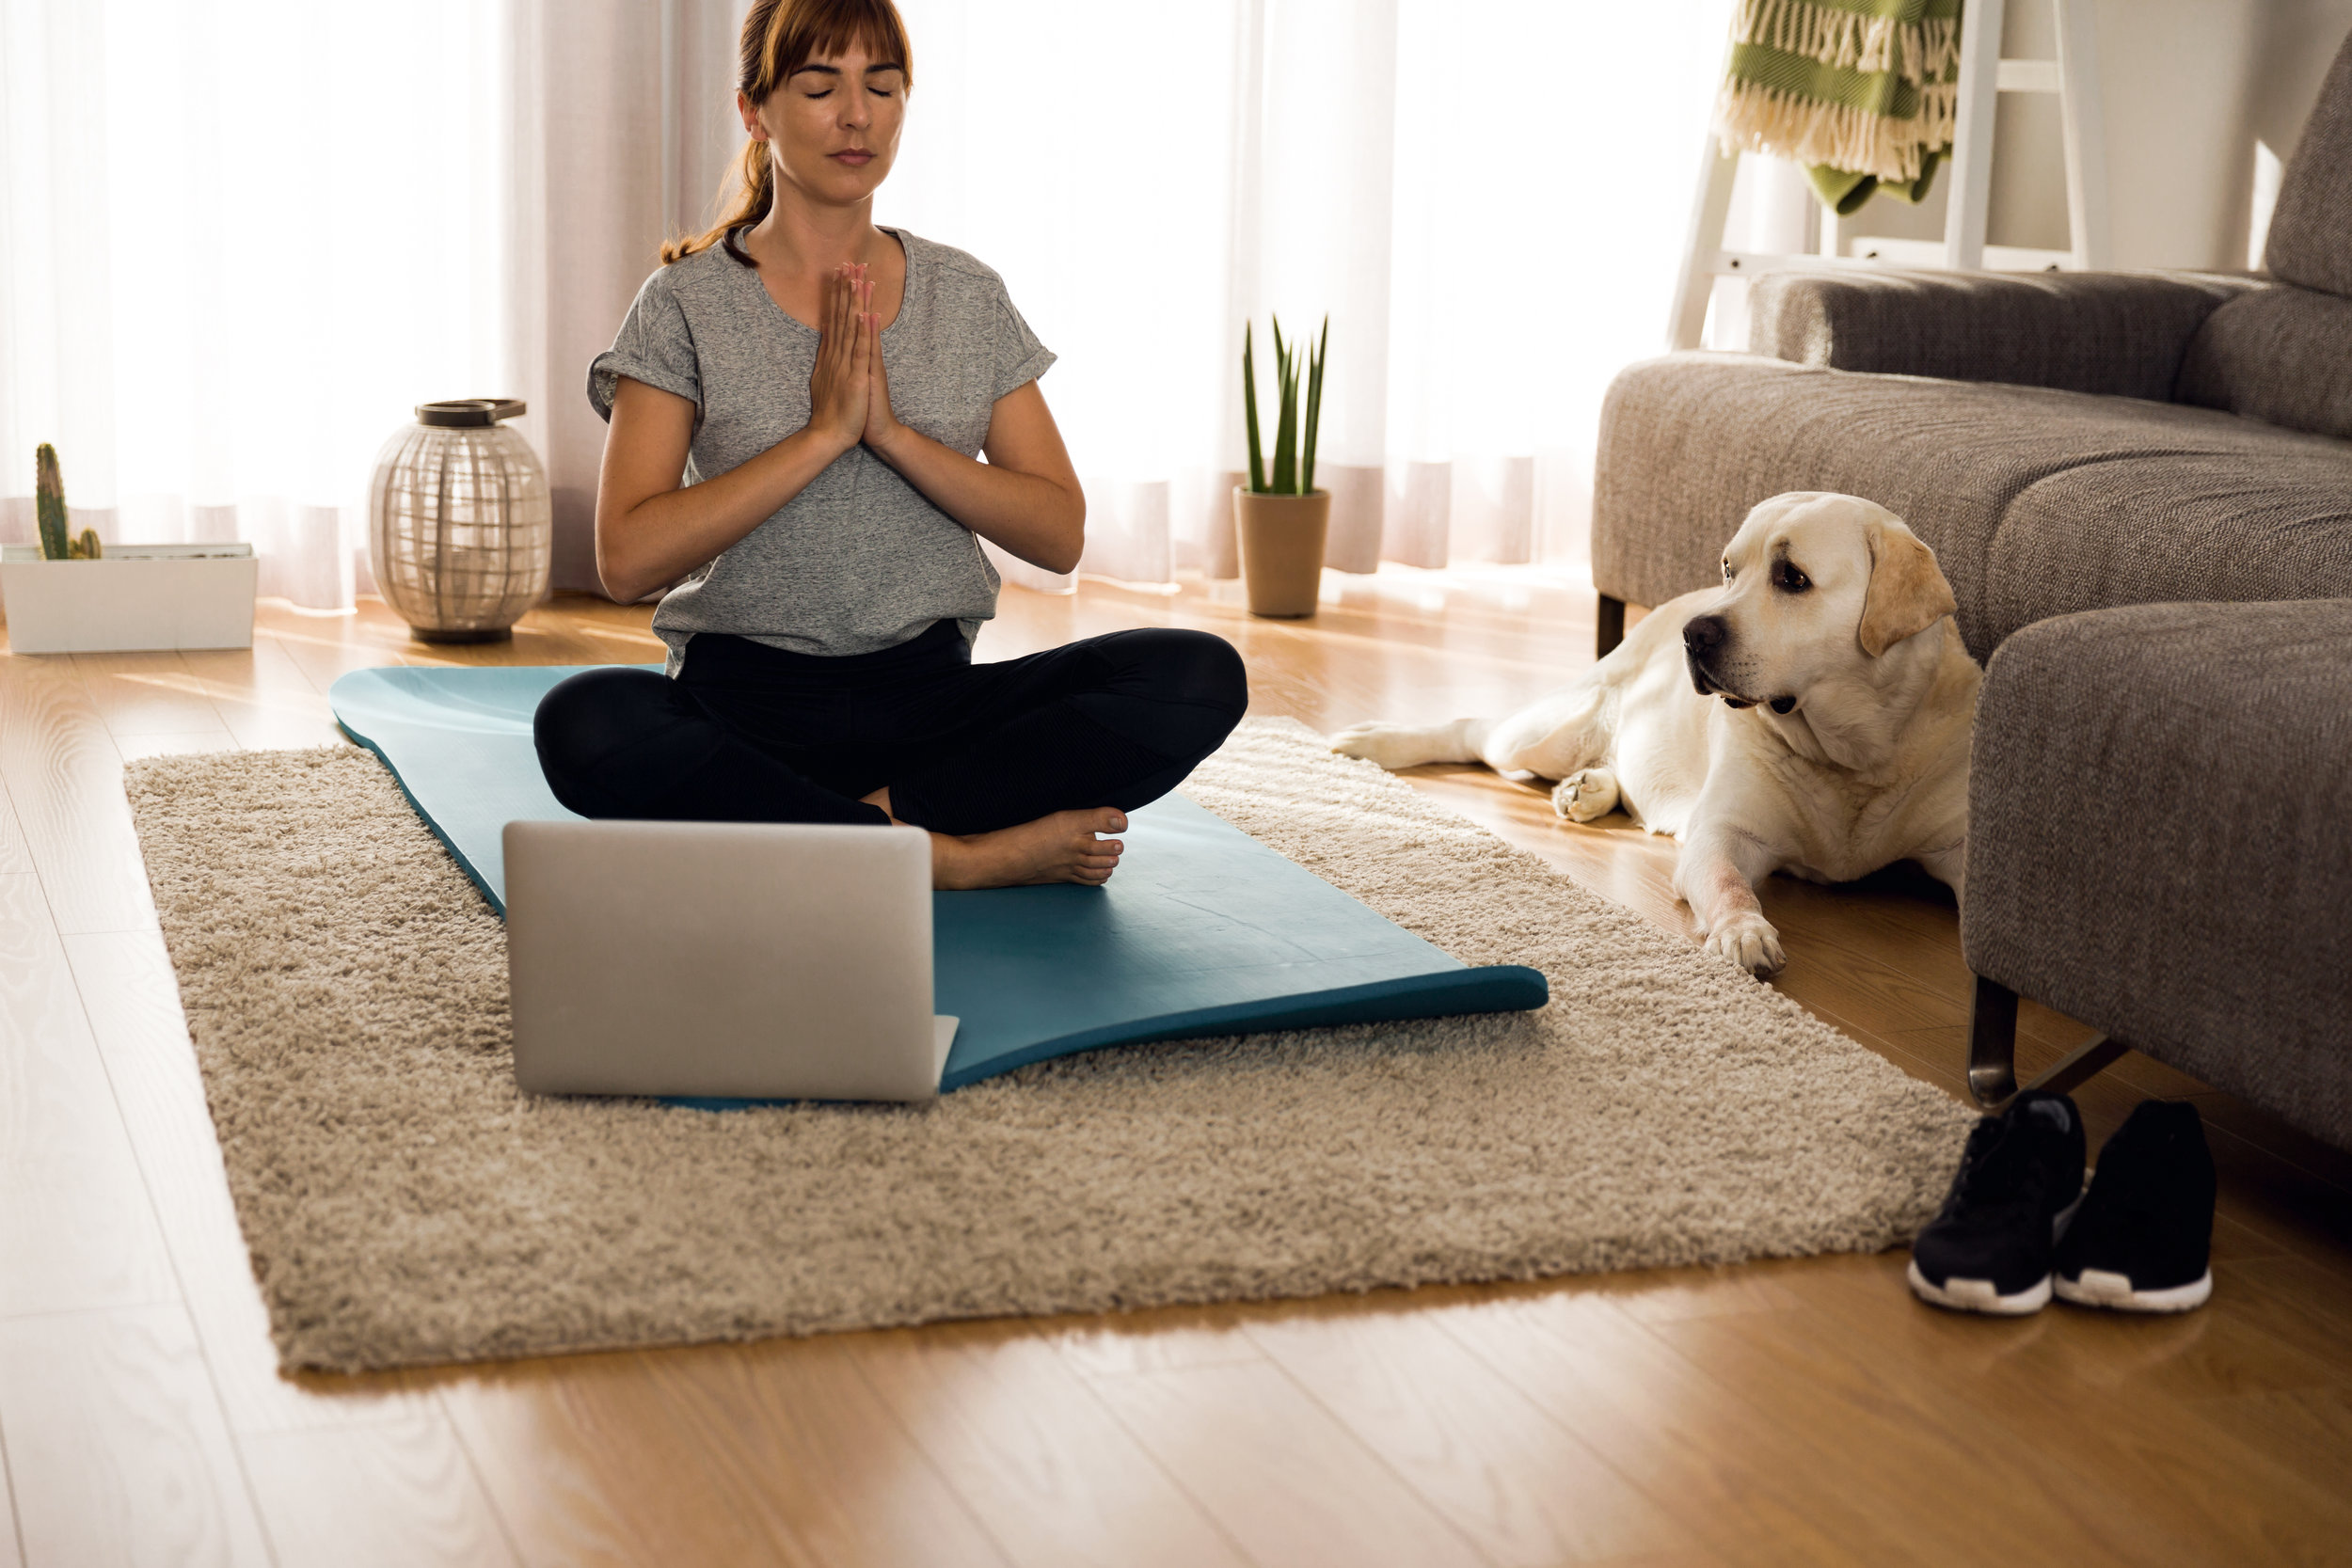 YOGA WITH LAPTOP AND DOG.jpeg